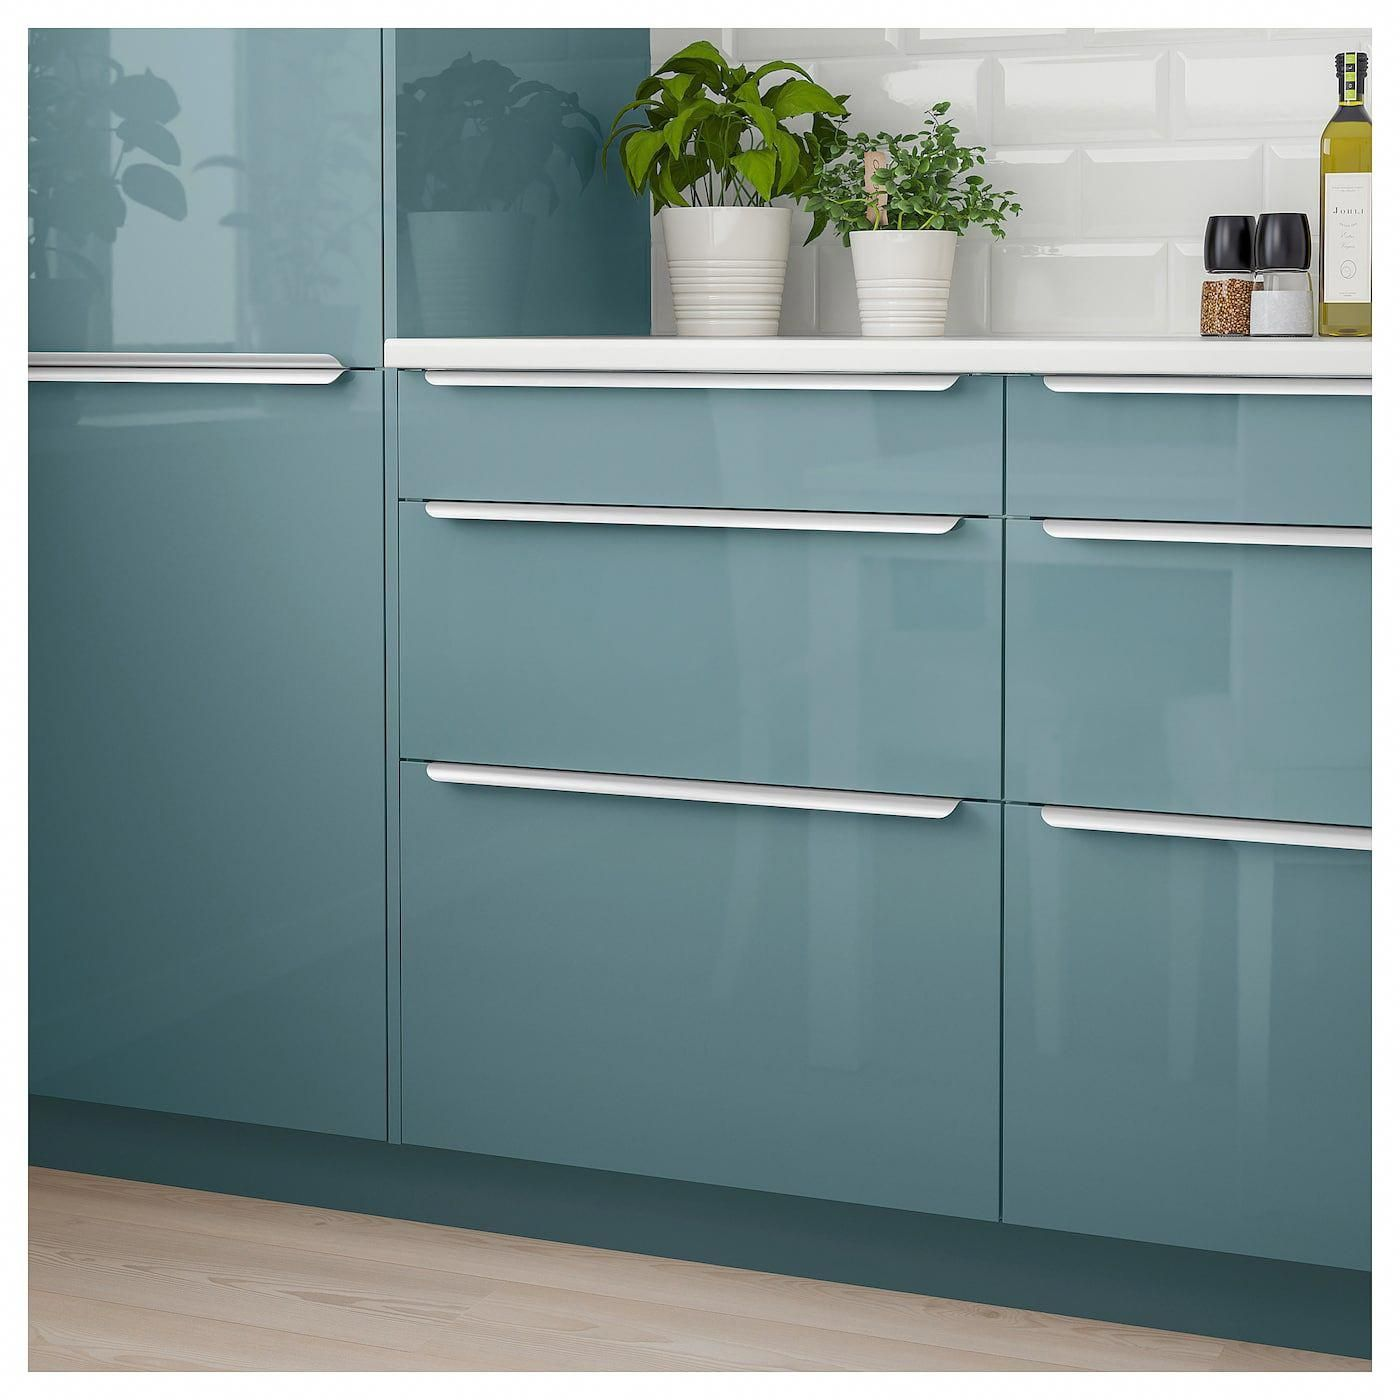 Best Kallarp Drawer Front High Gloss Gray Turquoise Ikea 400 x 300